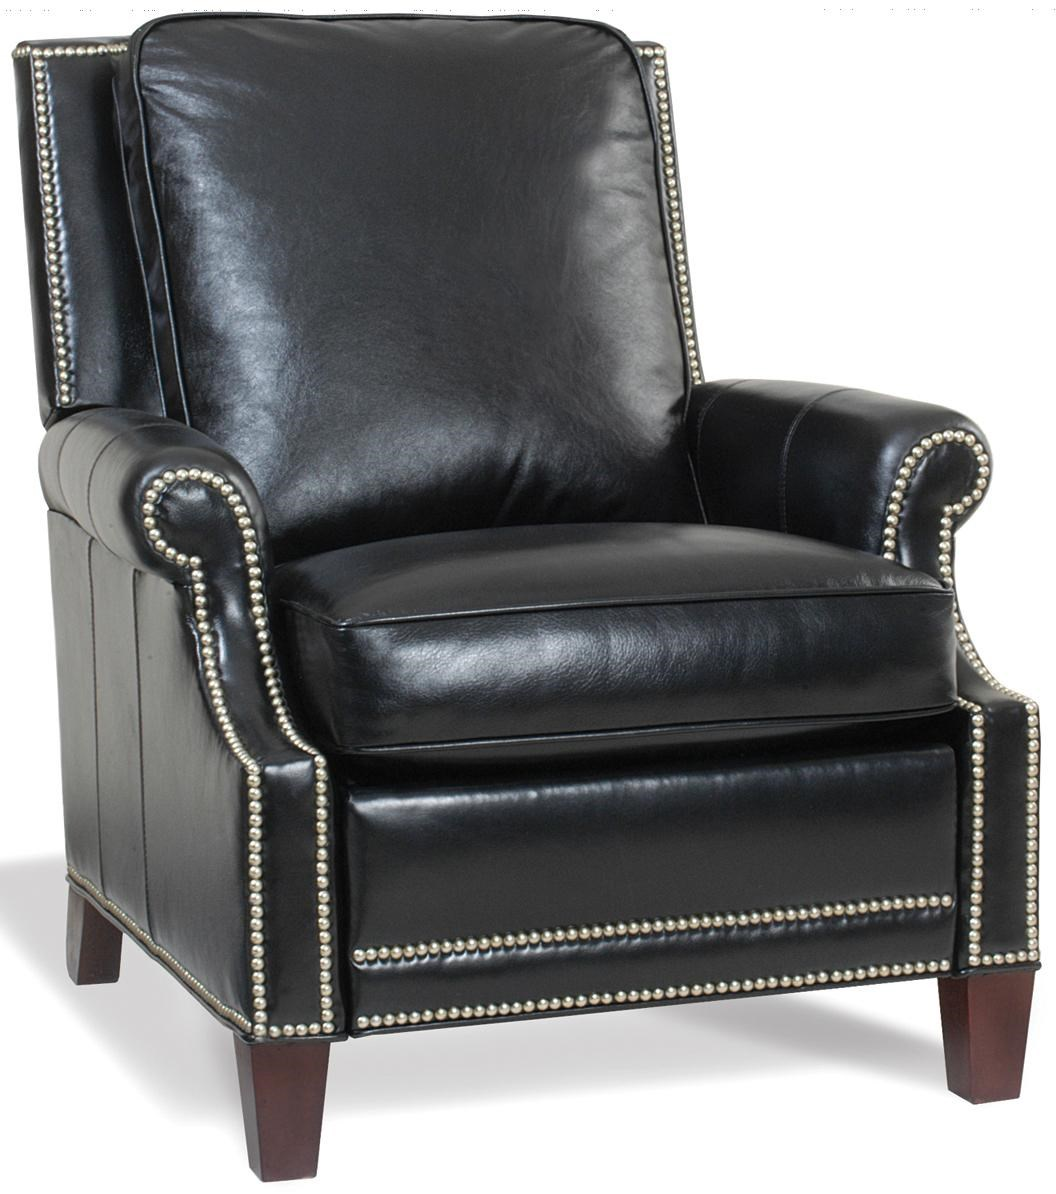 MotionCraft by Sherrill Recliners Transitional Push Back Recliner with Nailhead Trim - Jacksonville Furniture Mart - High Leg Recliners  sc 1 st  Jacksonville Furniture Mart & MotionCraft by Sherrill Recliners Transitional Push Back Recliner ... islam-shia.org